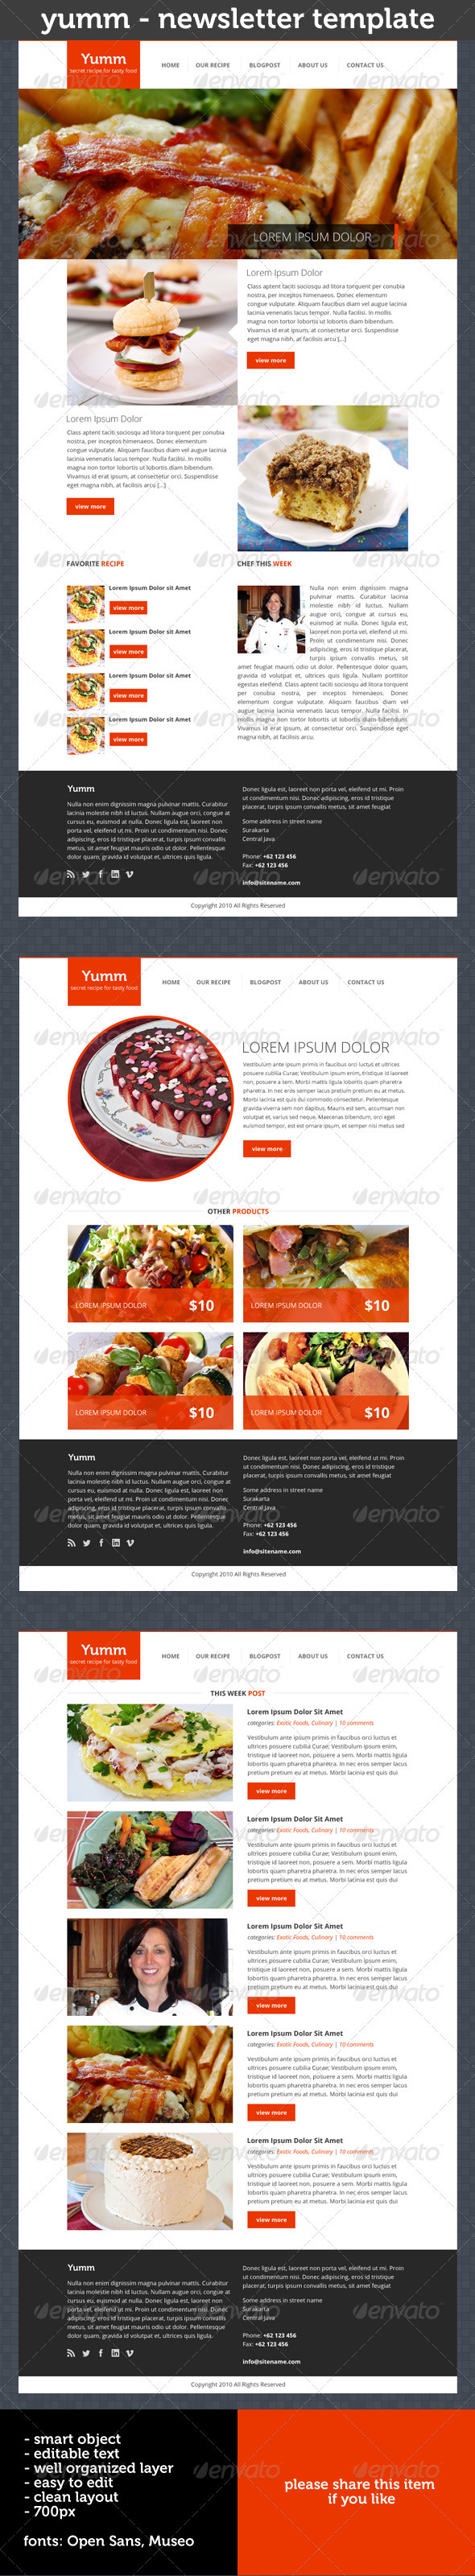 Yumm - Newsletter Template - E-newsletters Web Elements